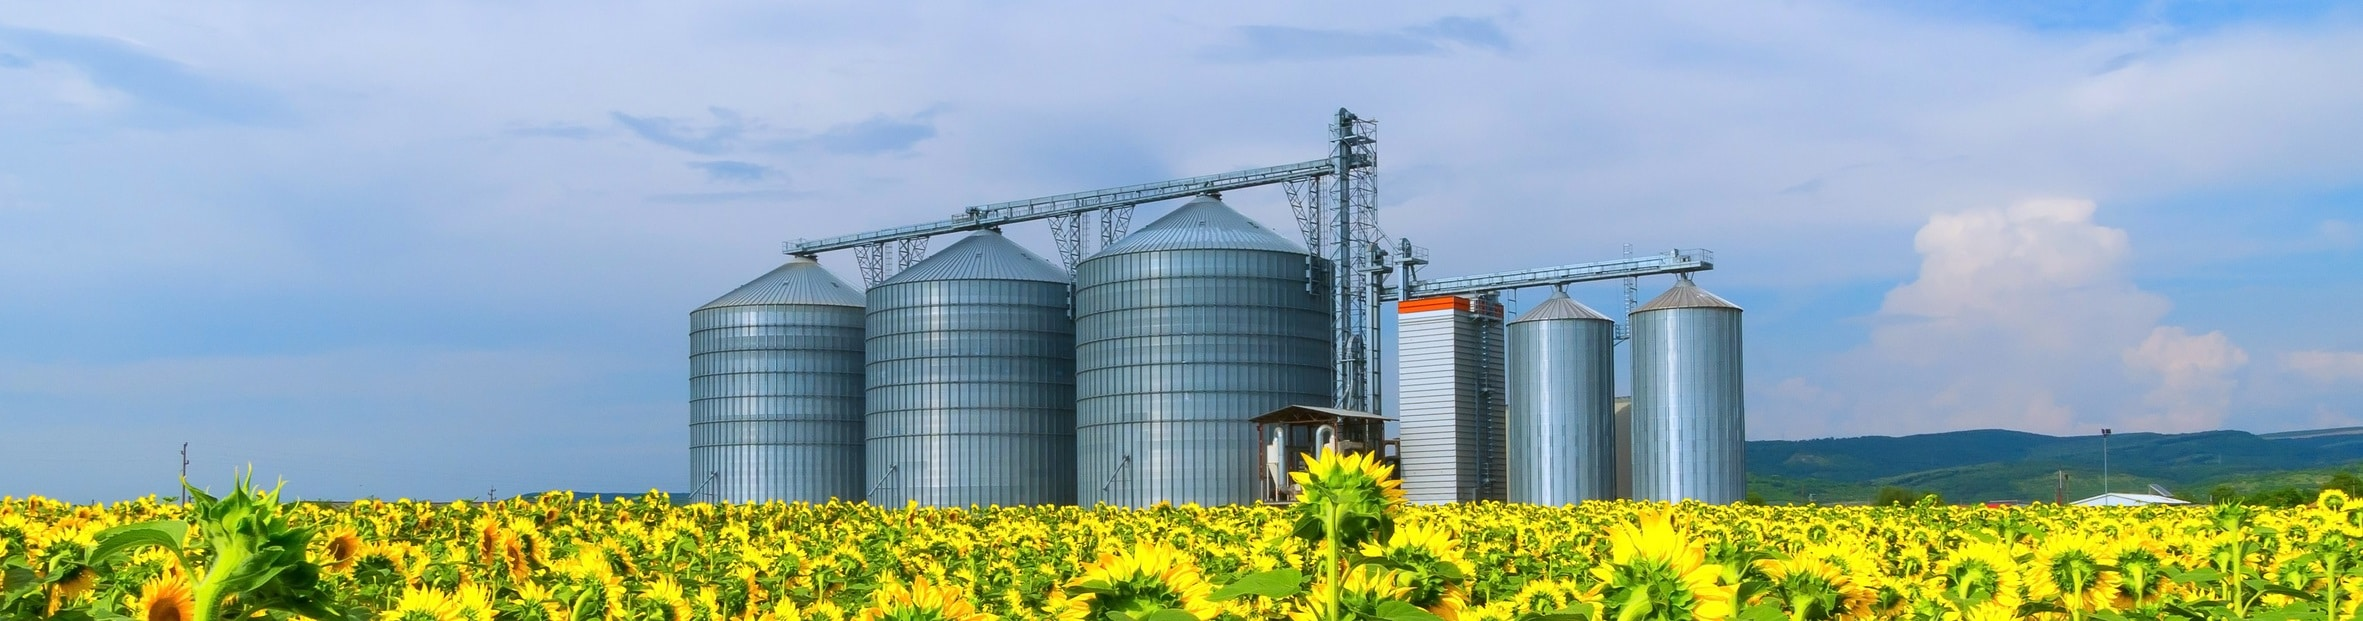 site industriel agroalimentaire